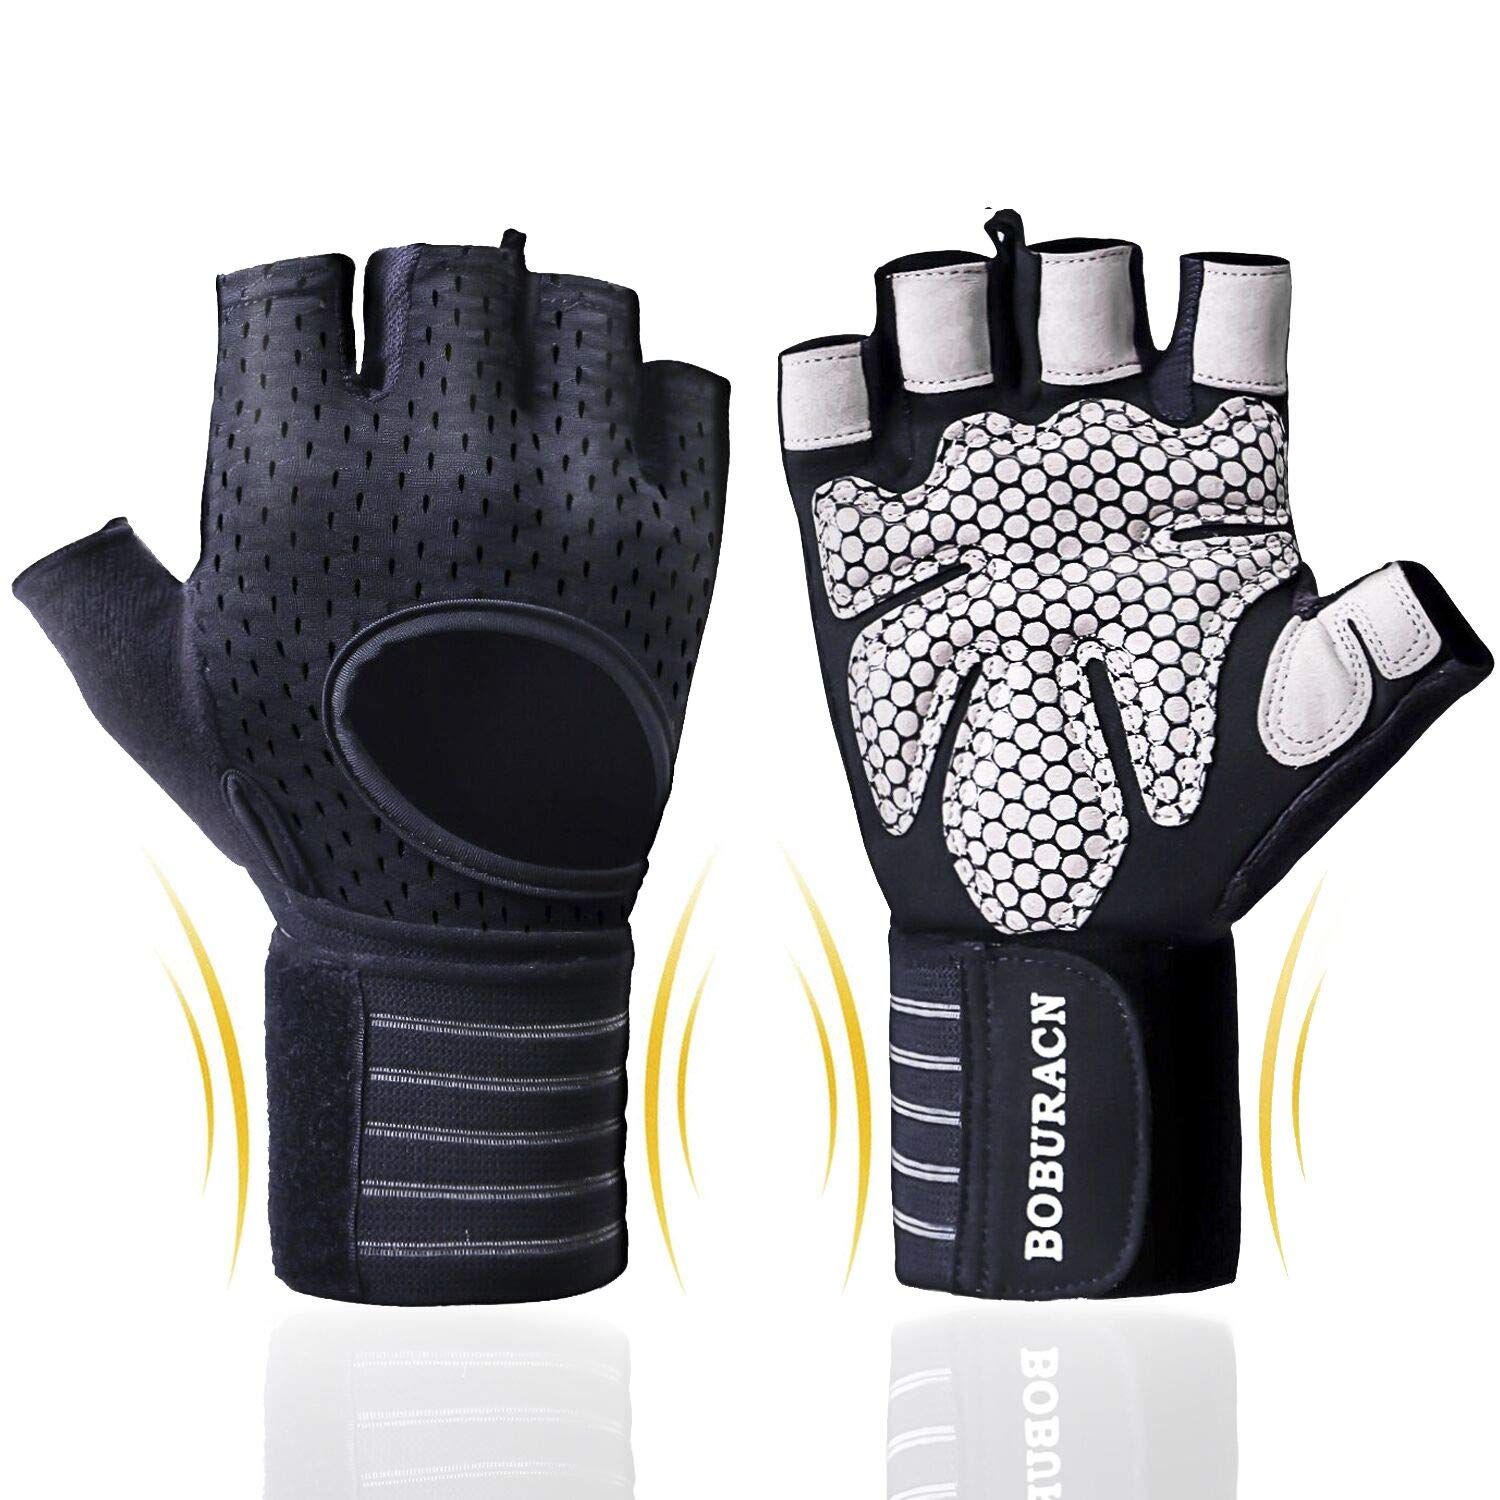 Full Palm Protection /& Extra Grip Gym Gloves for Weight Details about  /Workout Gloves